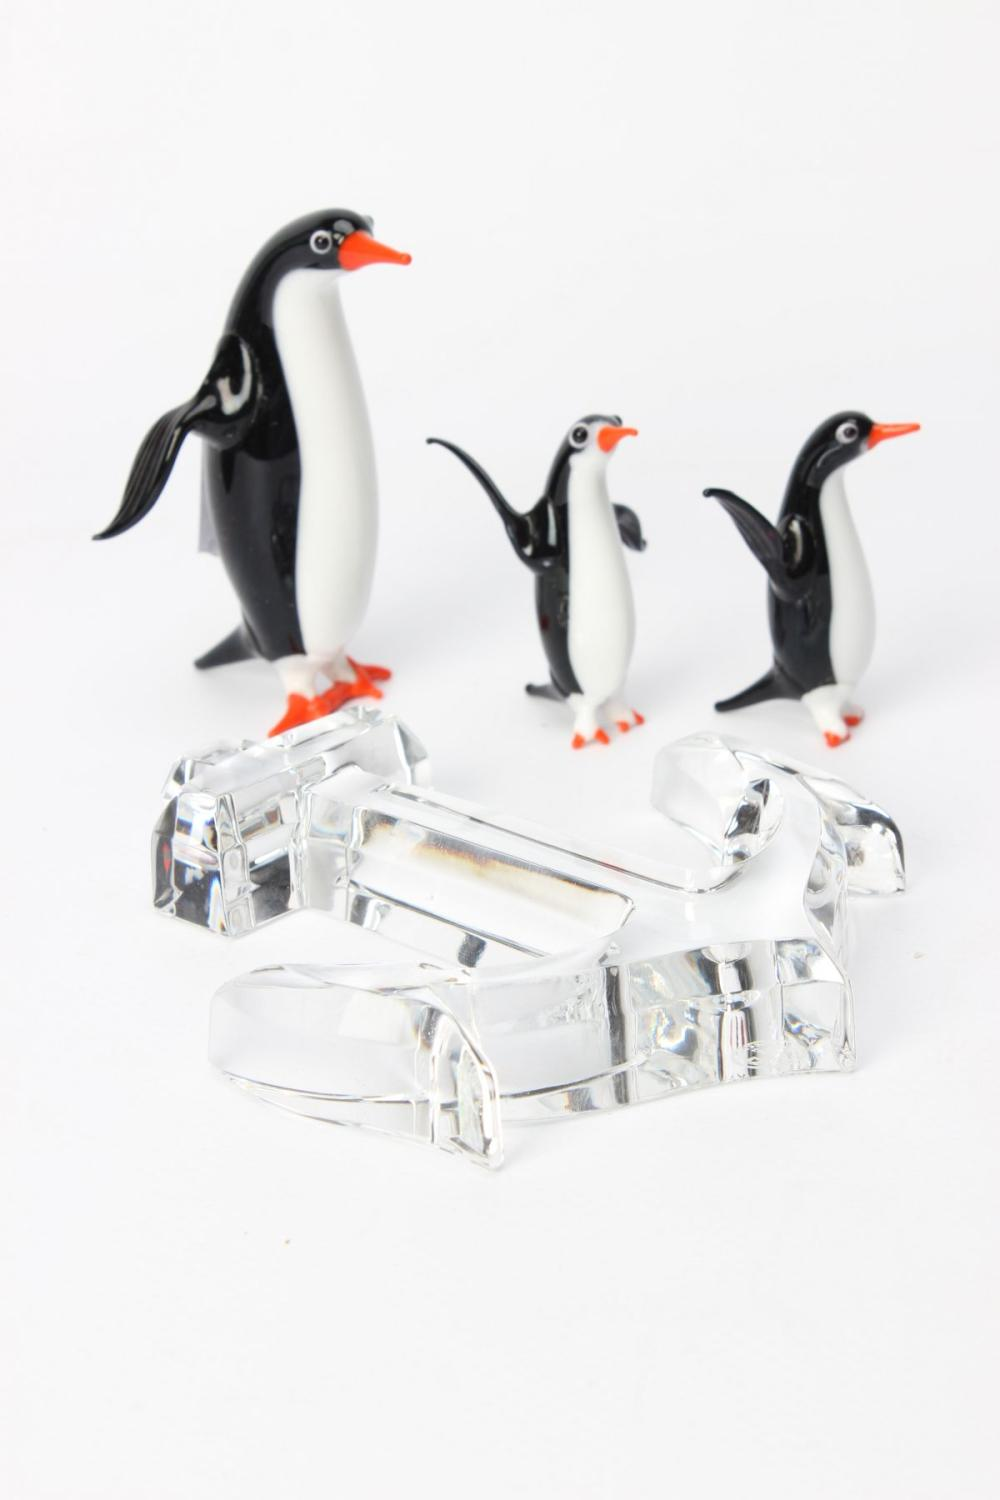 A Small Baccarat Crystal Anchor in Box Together with An Orrefors Bowl and Coloured Glass Penguins